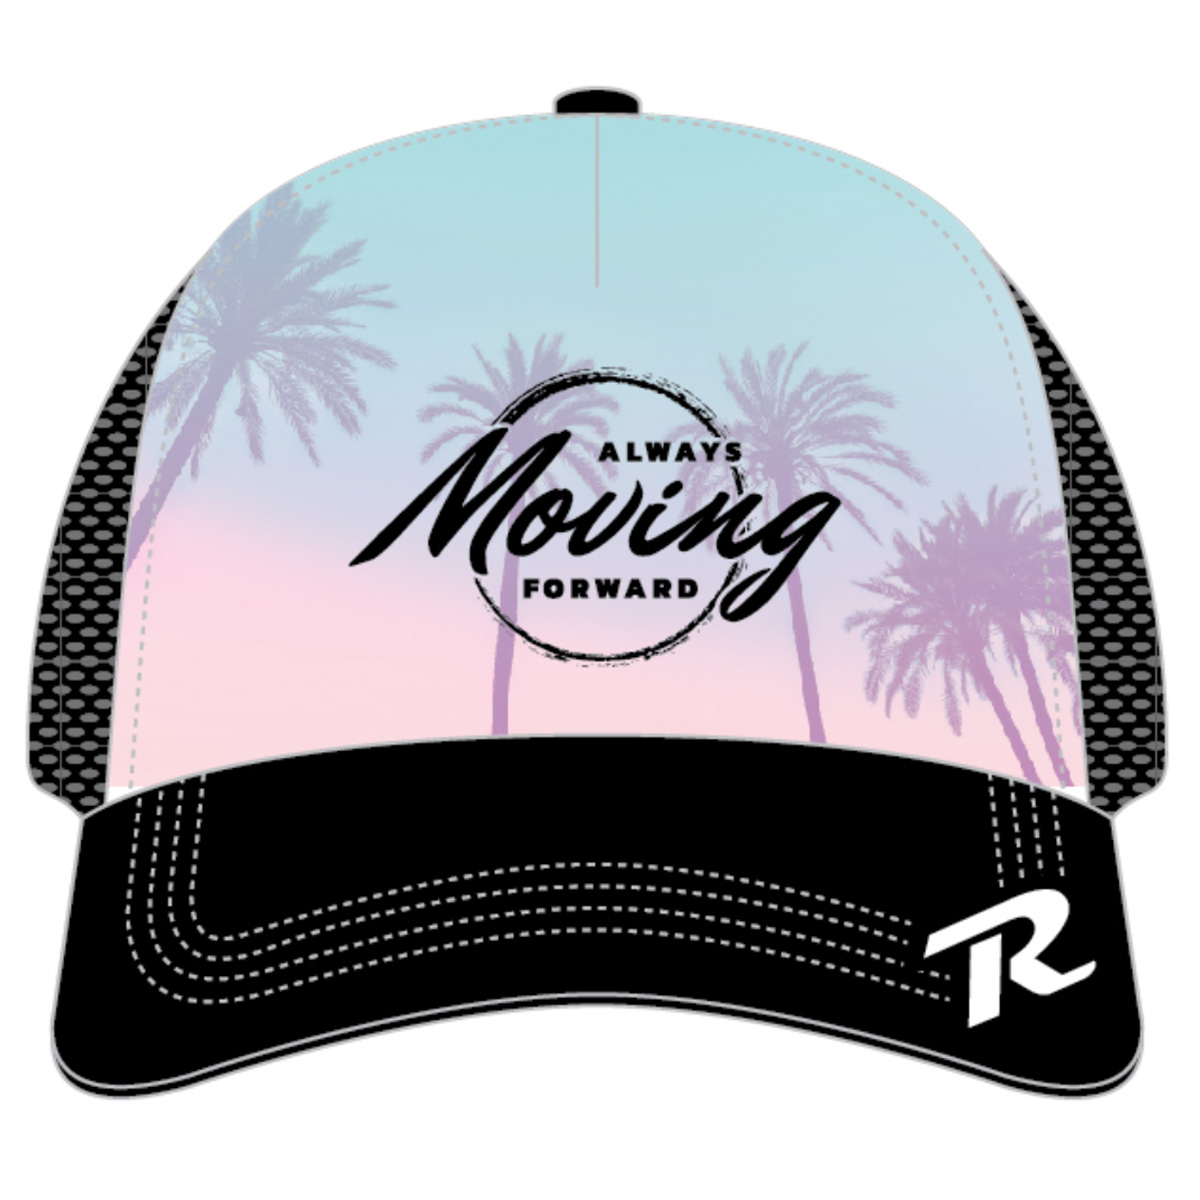 ROCK N ROLL MARATHON SERIES SCAPE TRUCKER